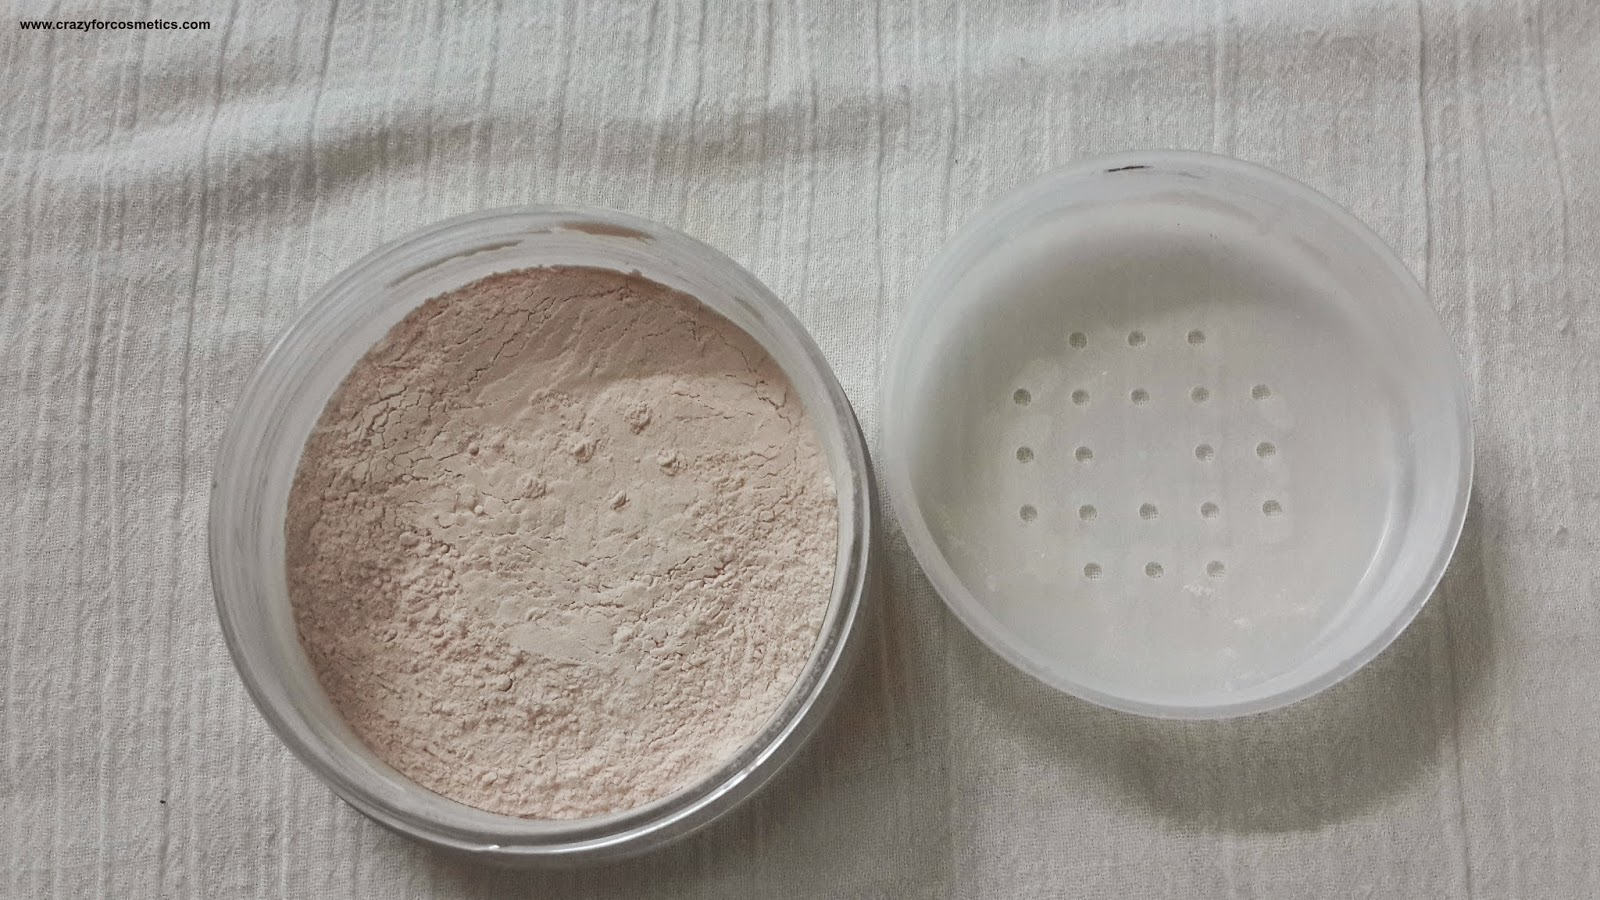 KANEBO MEDIA MAKEUP JAPAN LOOSE POWDER AA SPF18 PA++ LUCENT-kanebo media loose powder-kanebo media pressed powder-face powder review-compact powder review